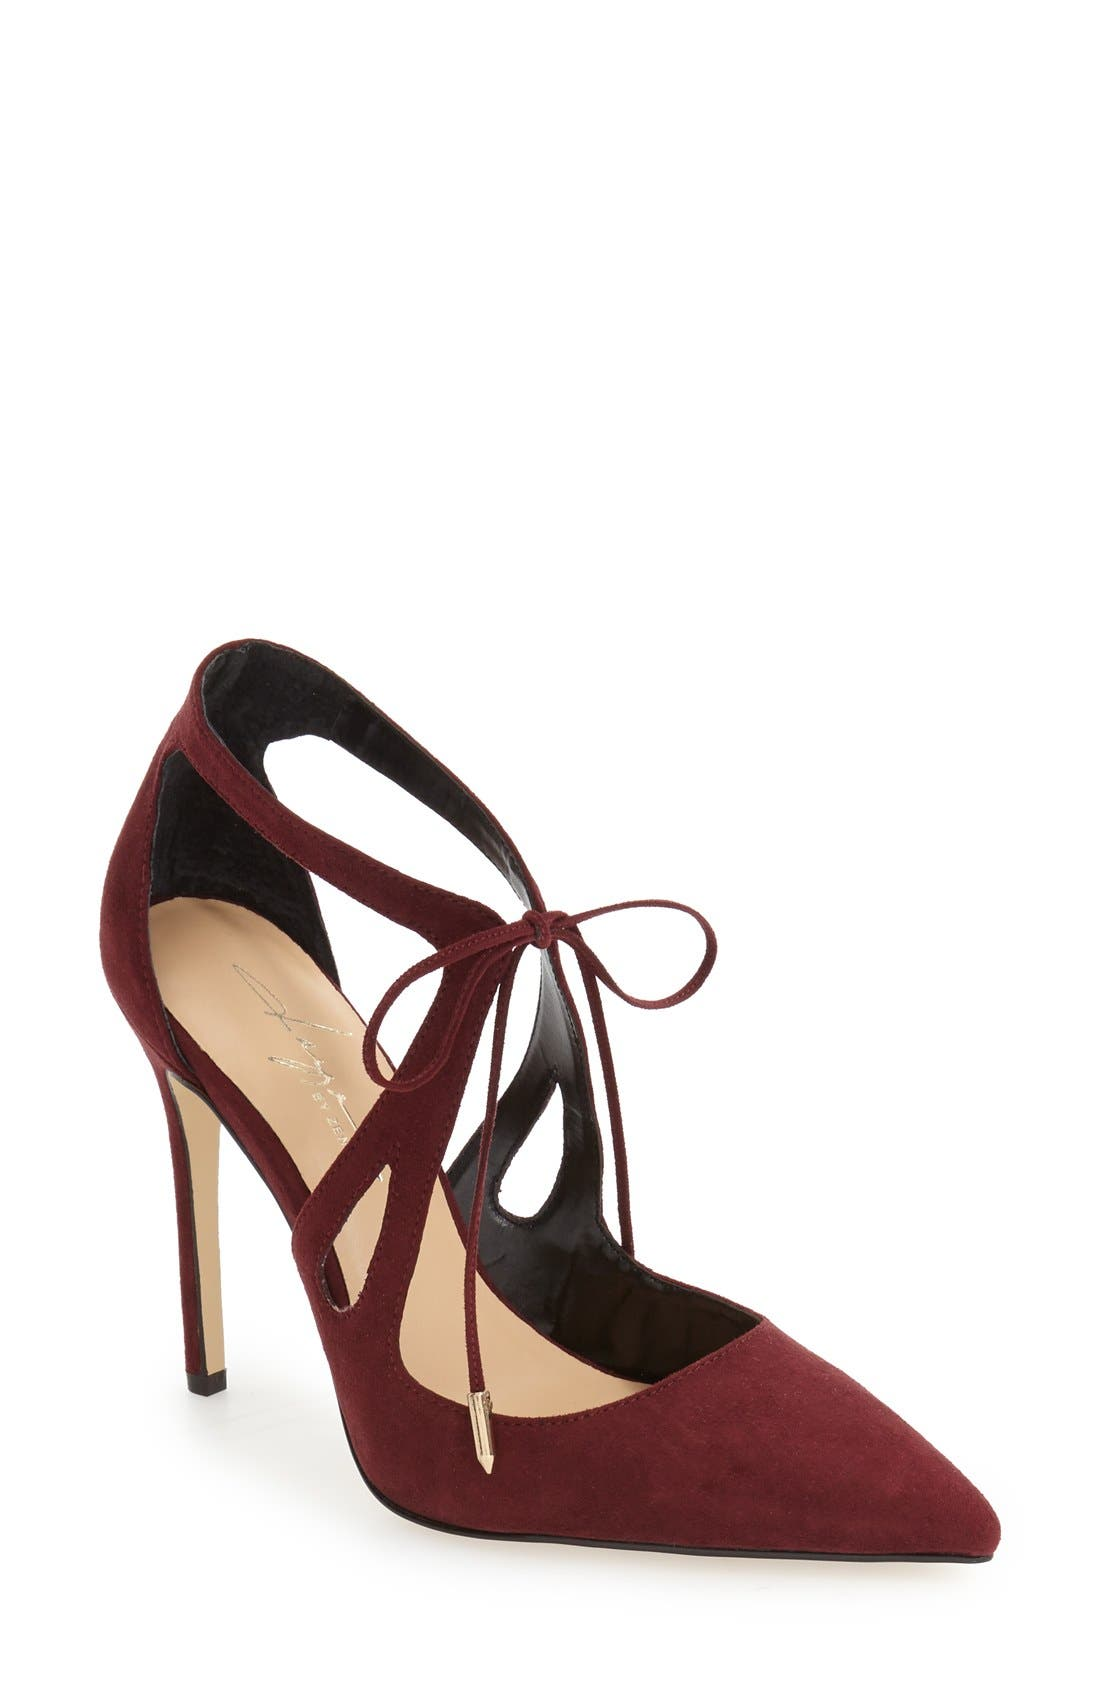 Main Image - Daya by Zendaya 'Aaron' Pointy Toe Pump (Women)